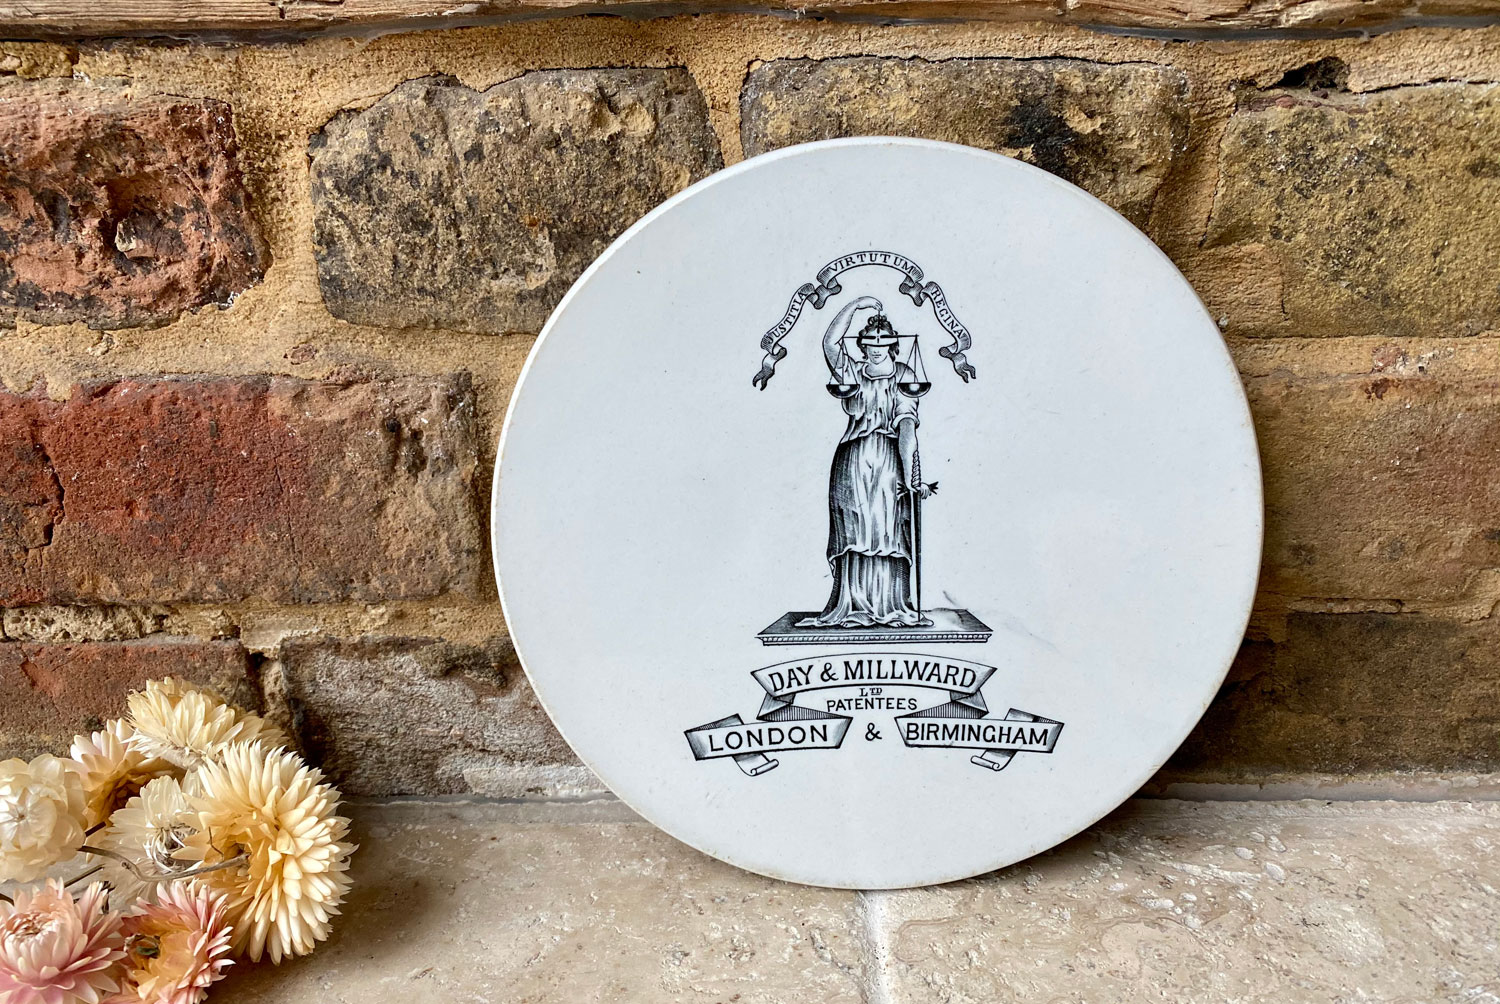 antique edwardian white ironstone scale plate justitia fides day millward